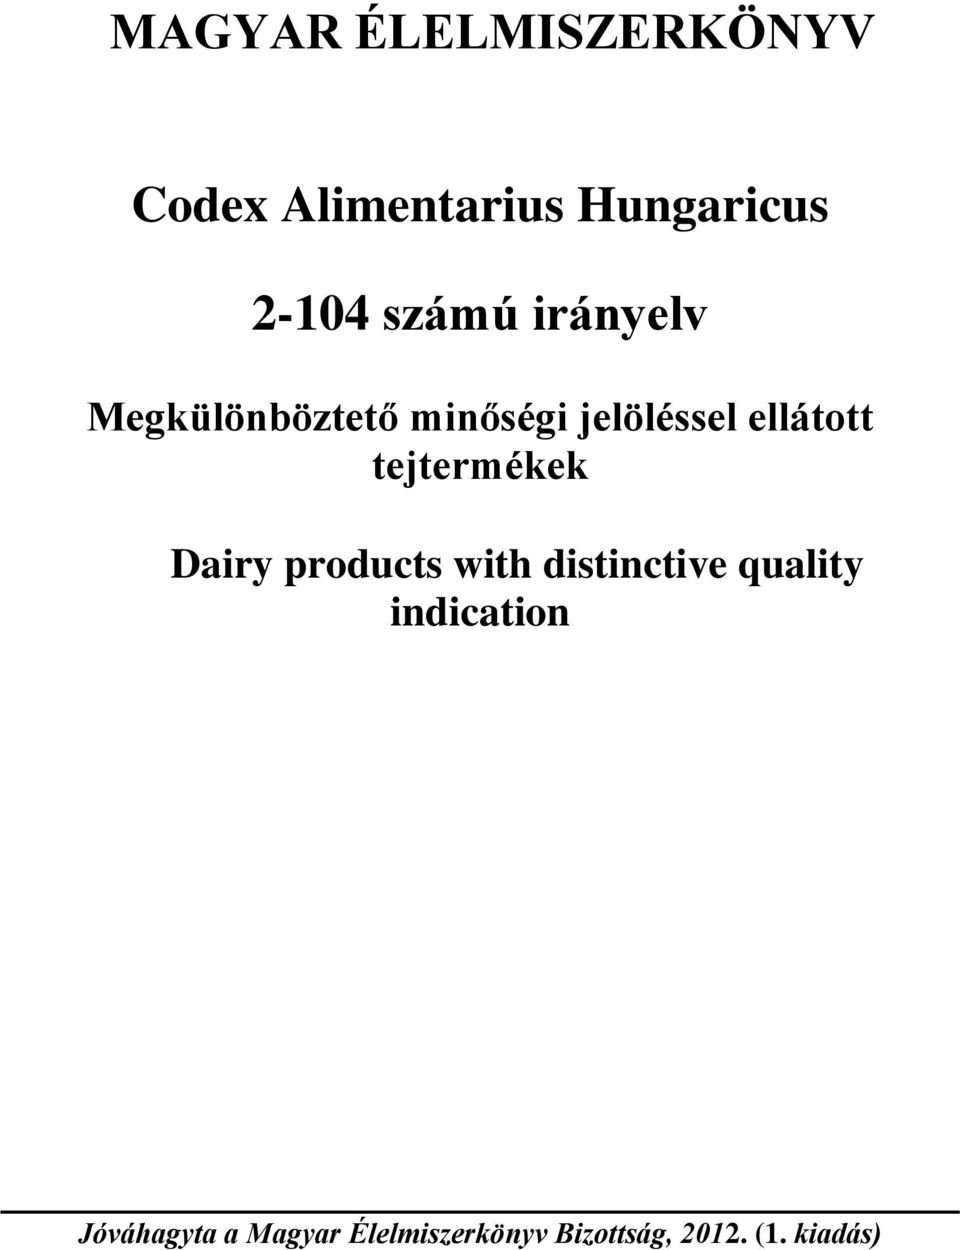 tejtermékek Dairy products with distinctive quality